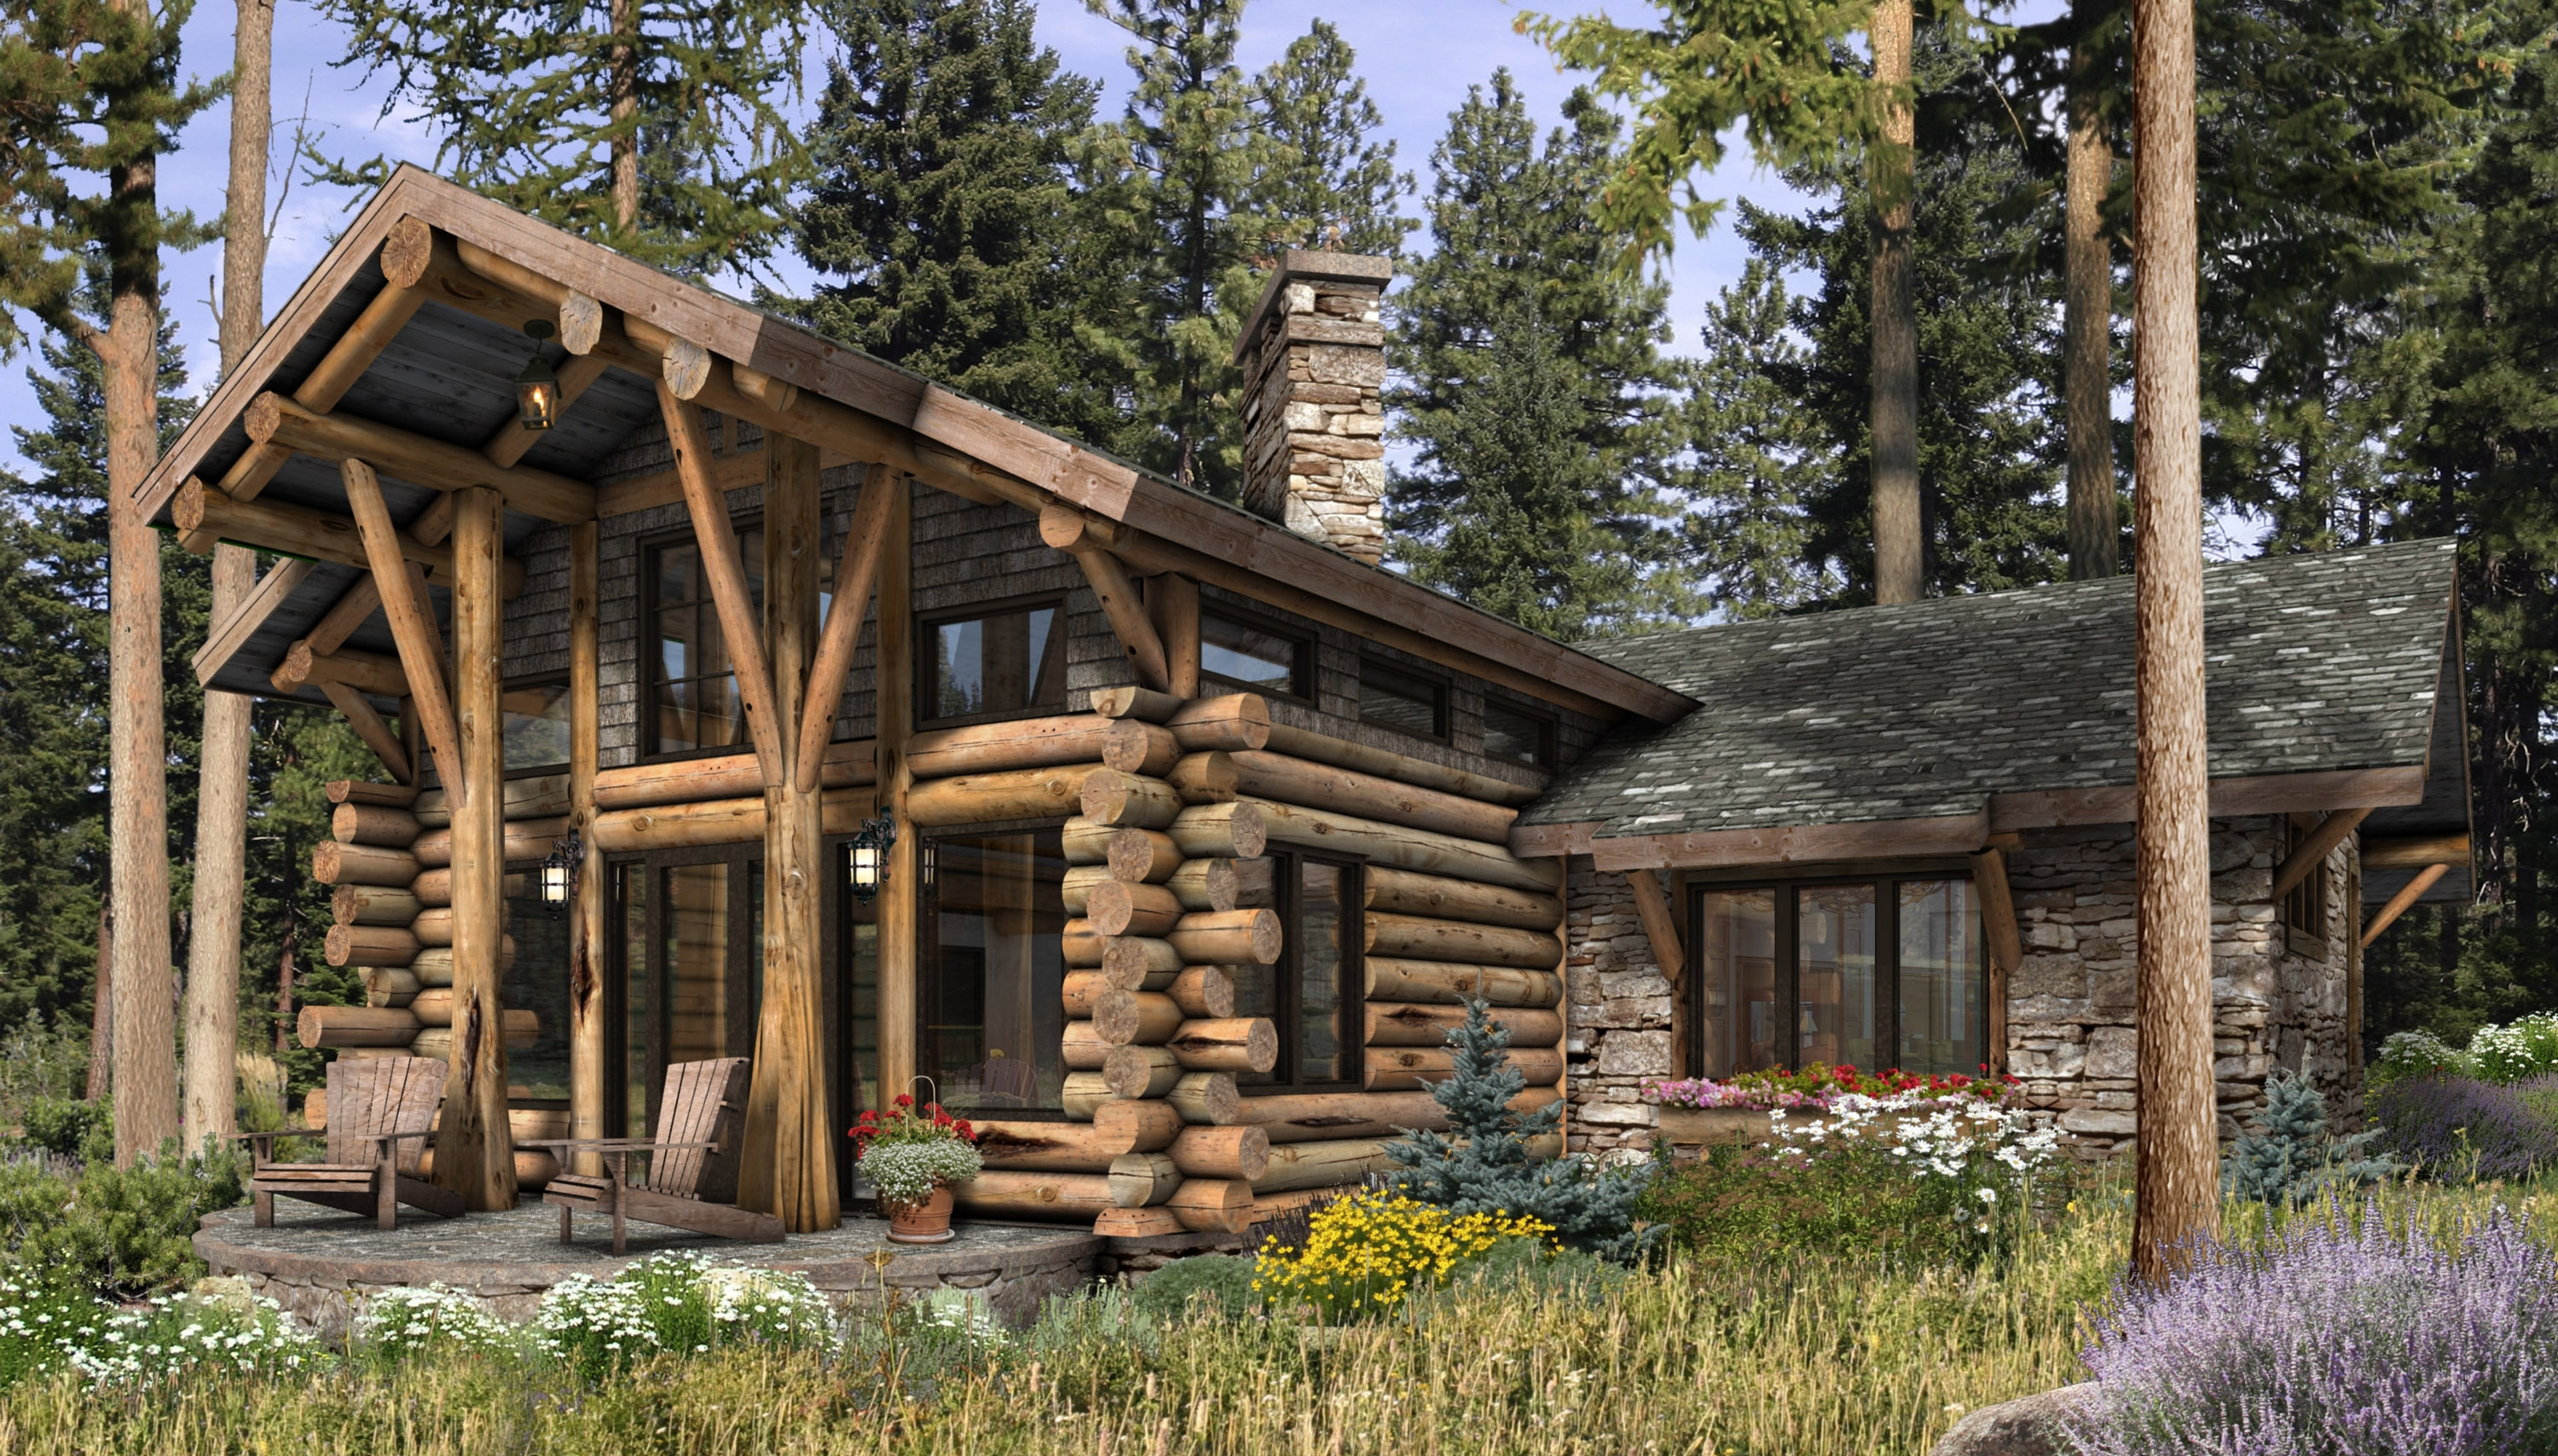 Telluride Log Cabin Plan by Architects Mountain 3000x1708